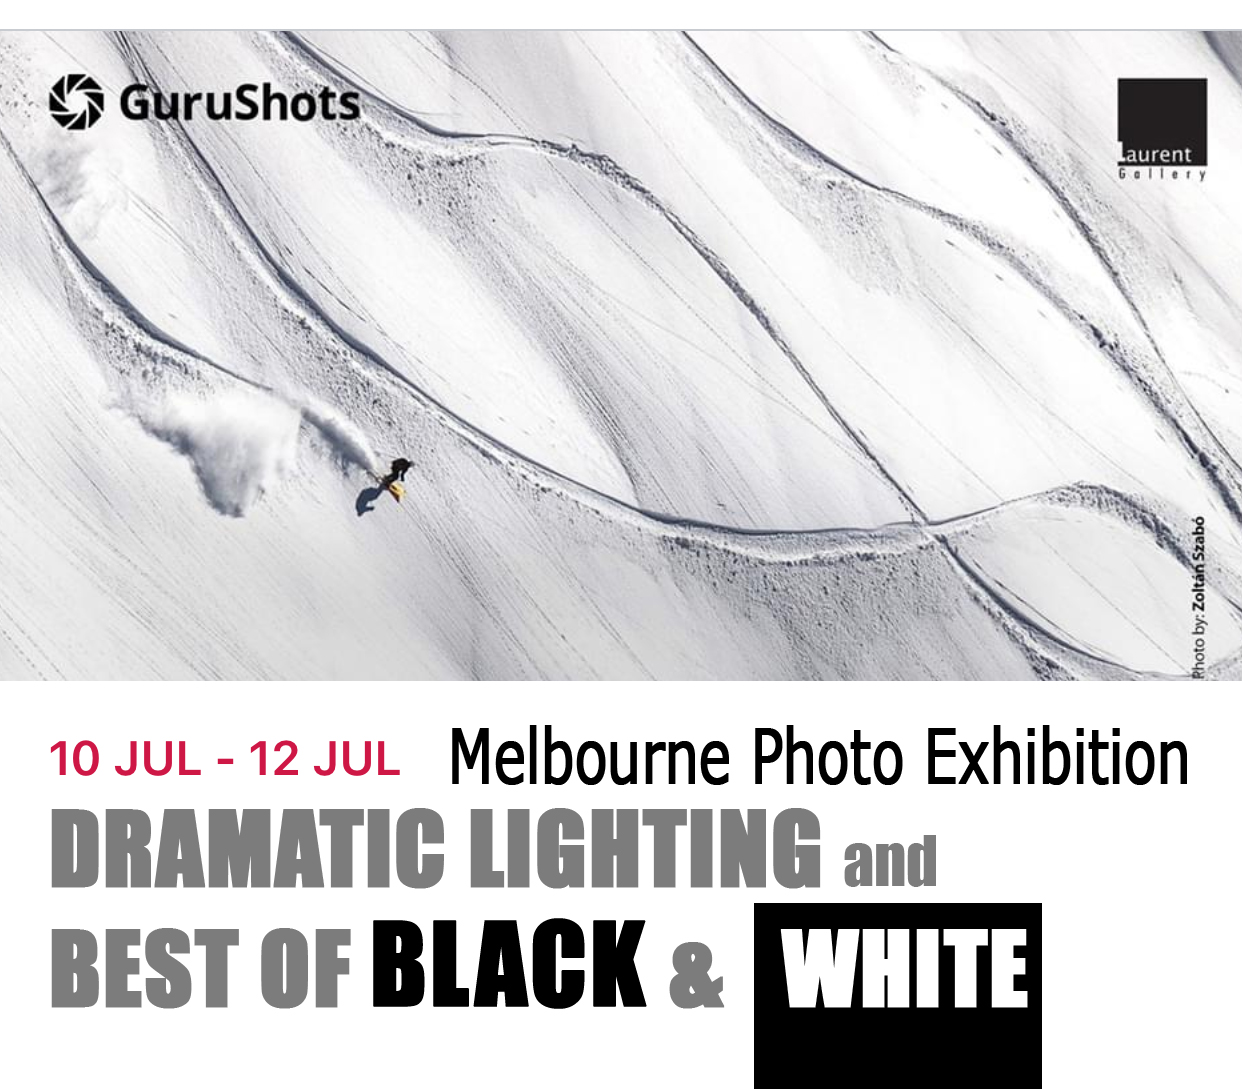 MELBOURNE PHOTOGRAPHY EXHIBITION